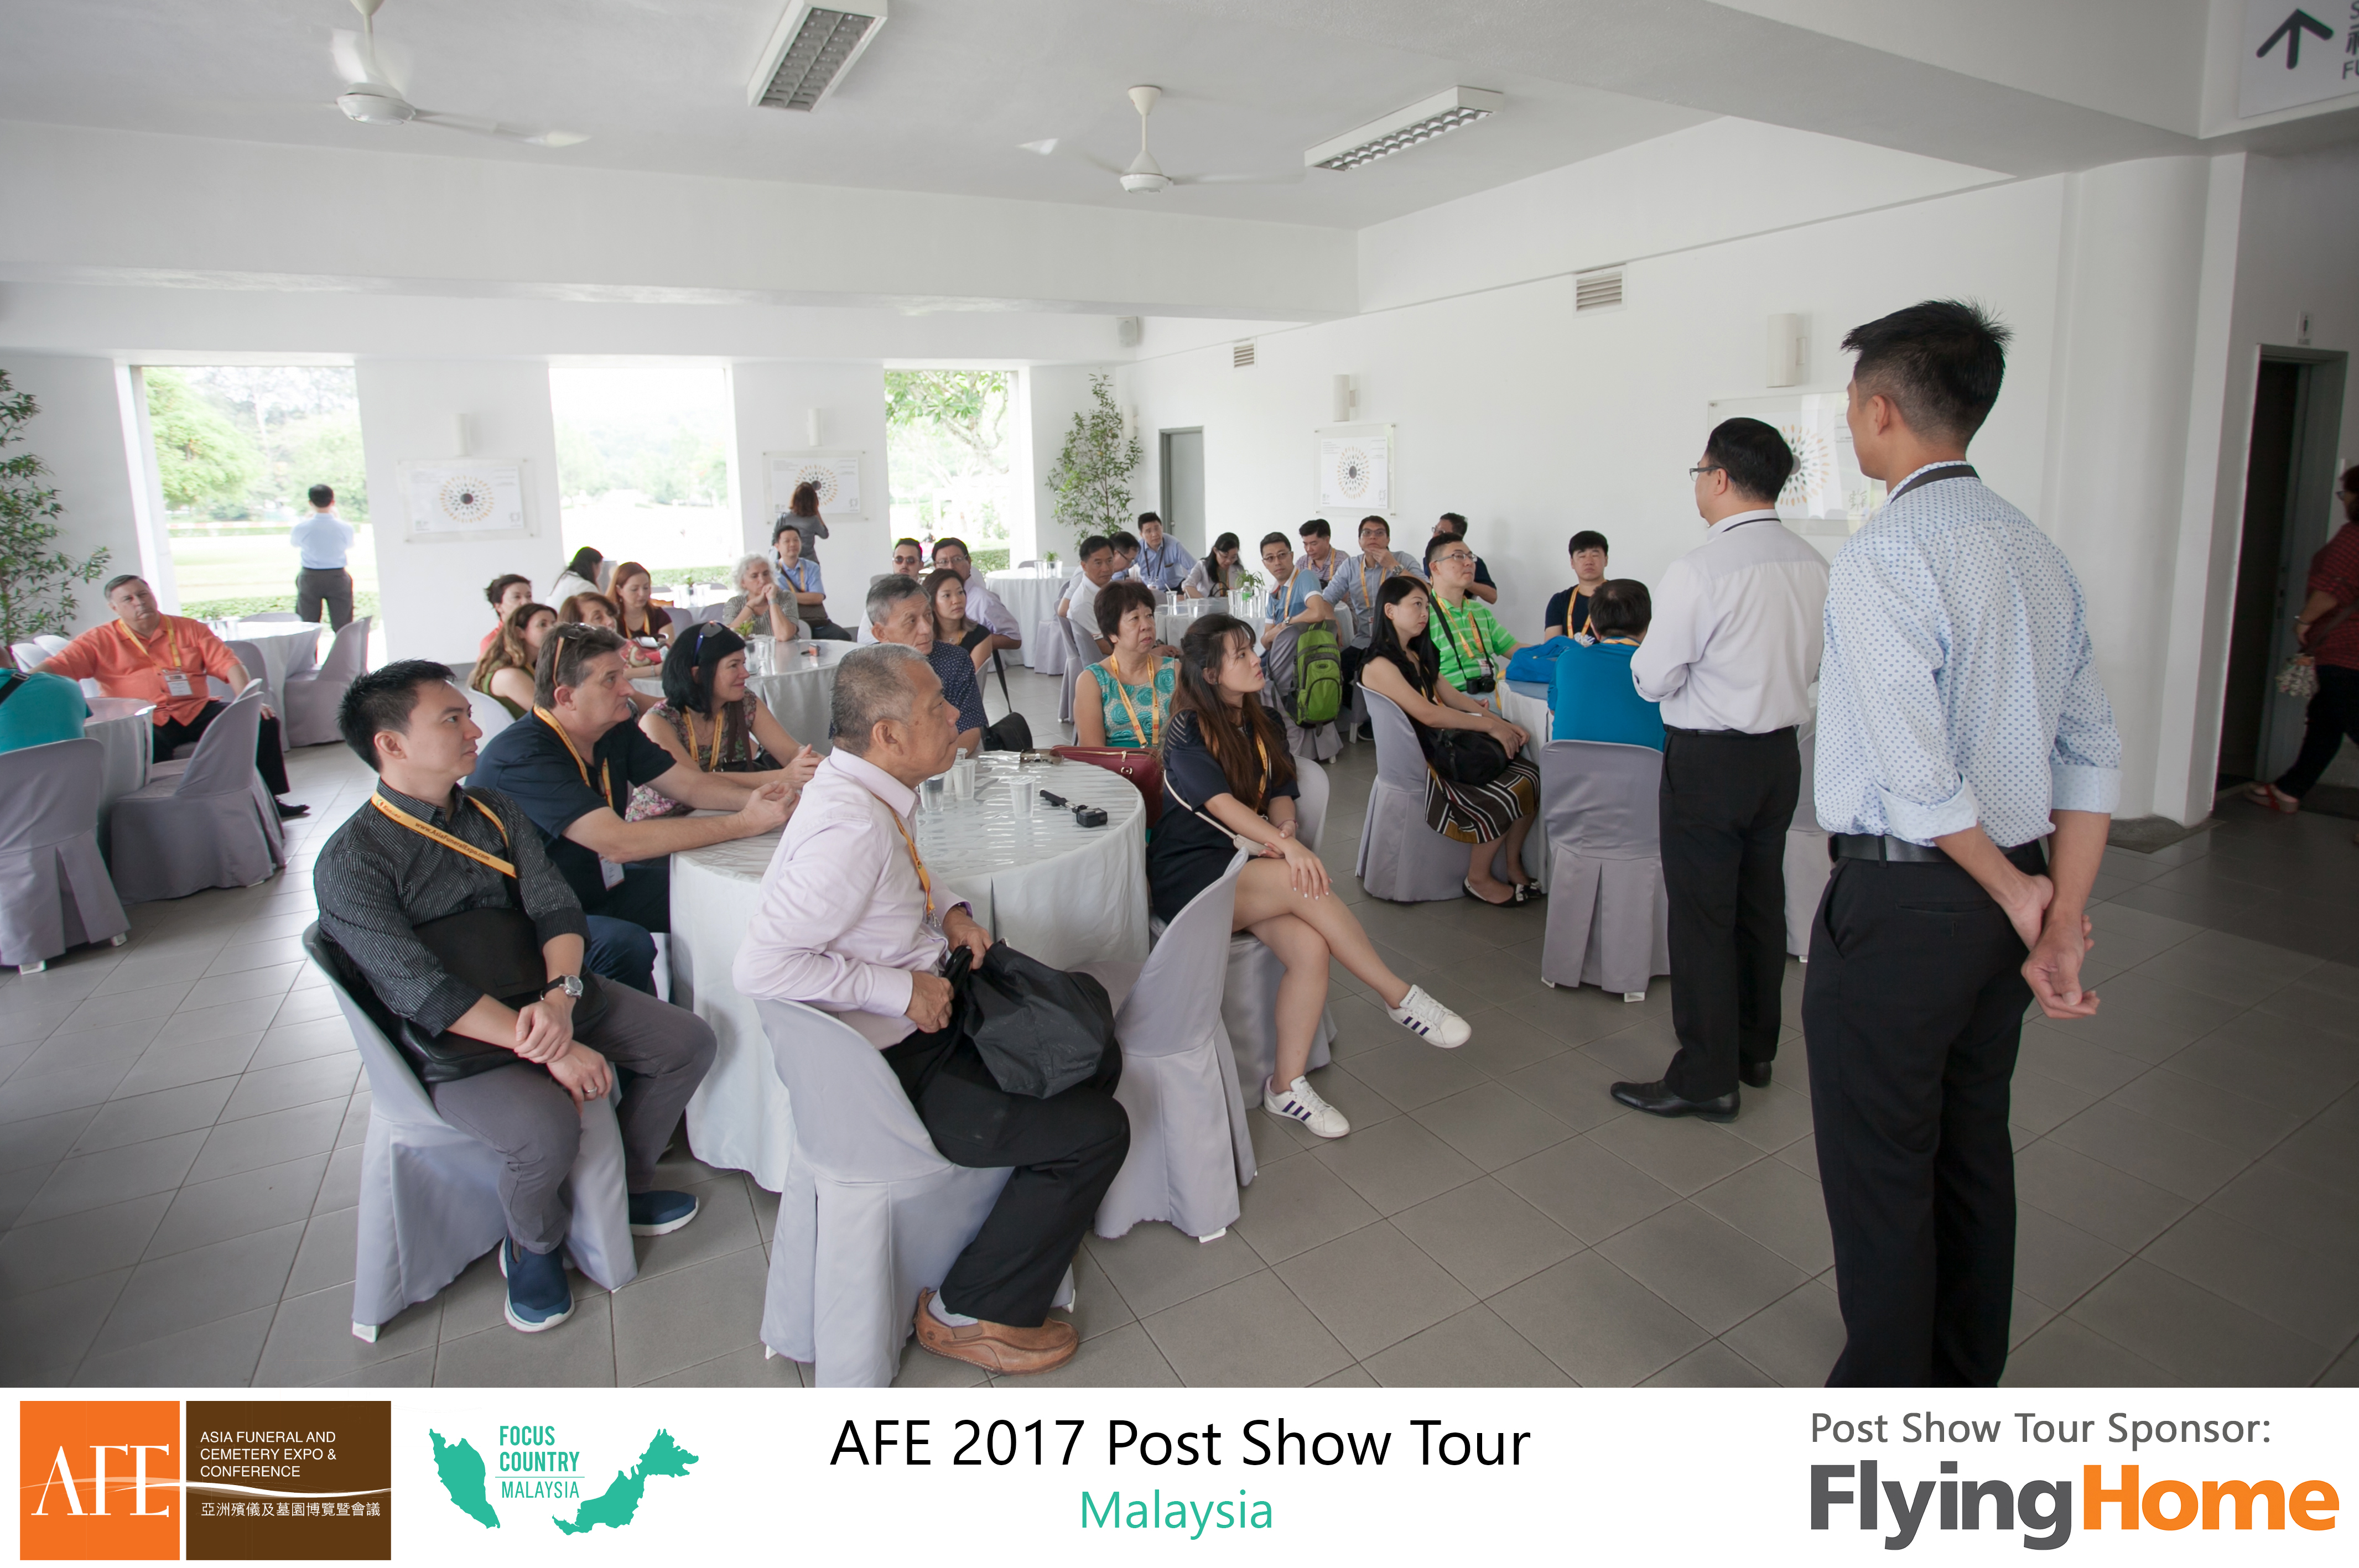 AFE Post Show Tour 2017 Day 3 -02